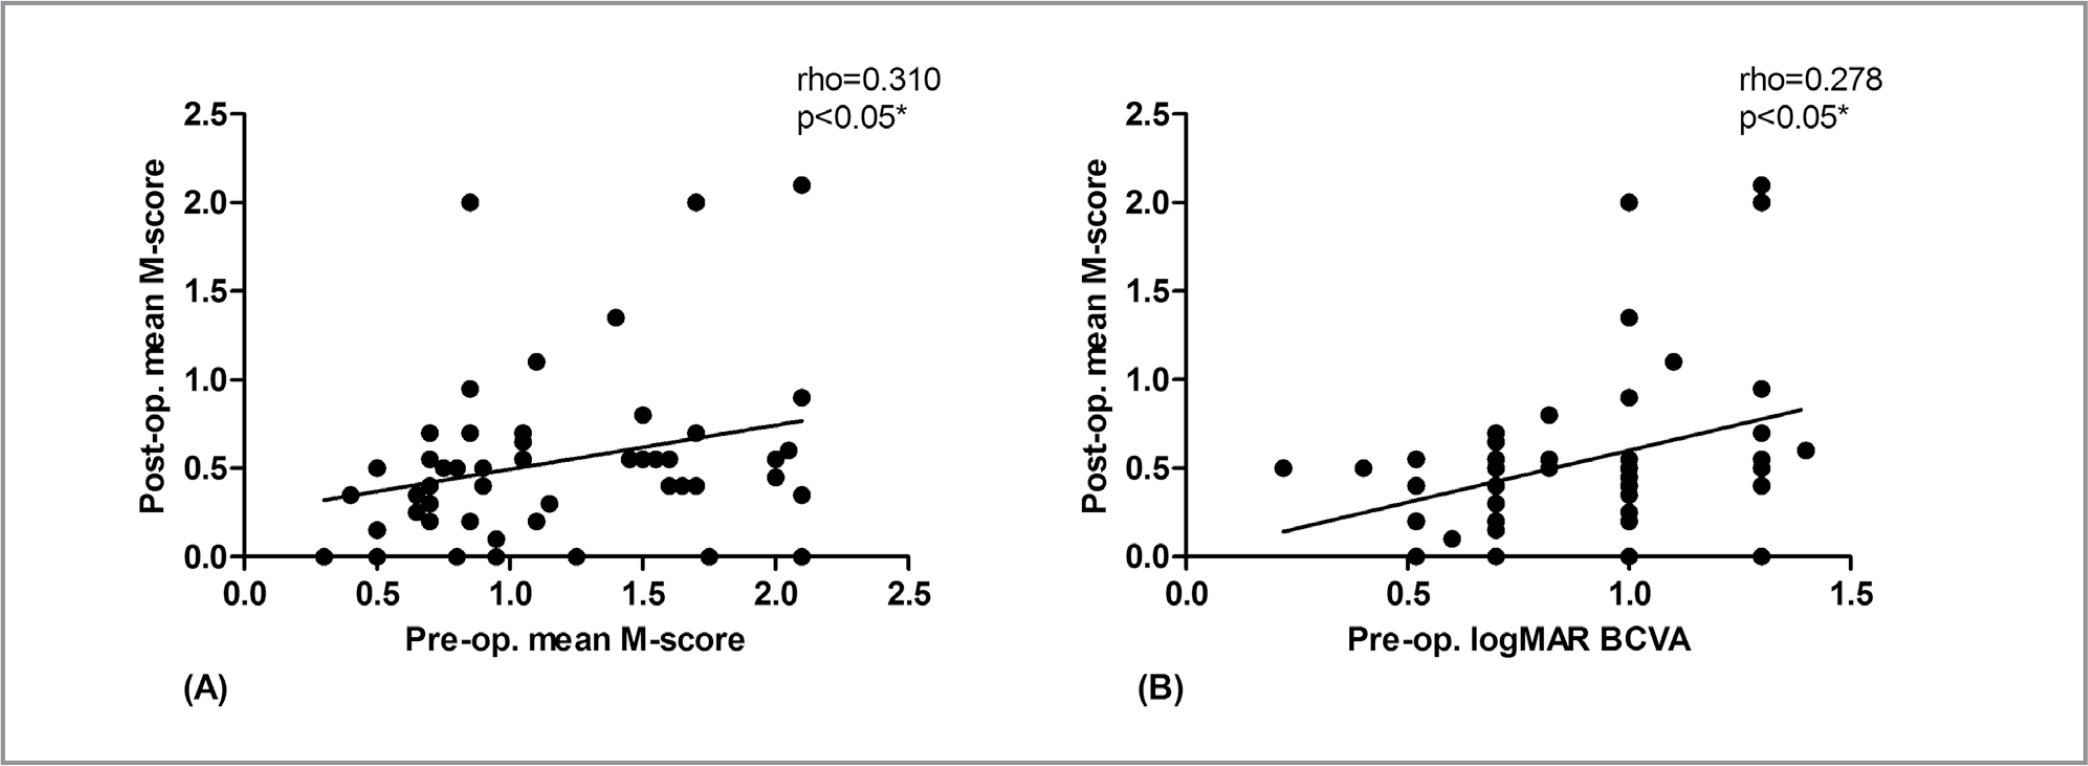 Correlations between preoperative logMAR best-corrected visual acuity (BCVA) and preoperative/postoperative M-score. Postoperative average M-score was positively correlated with (A) preoperative M-score (rho = 0.310; P = .024 < .05) and (B) preoperative logMAR BCVA at 6 months (rho = 0.278; P = .044 < .05).